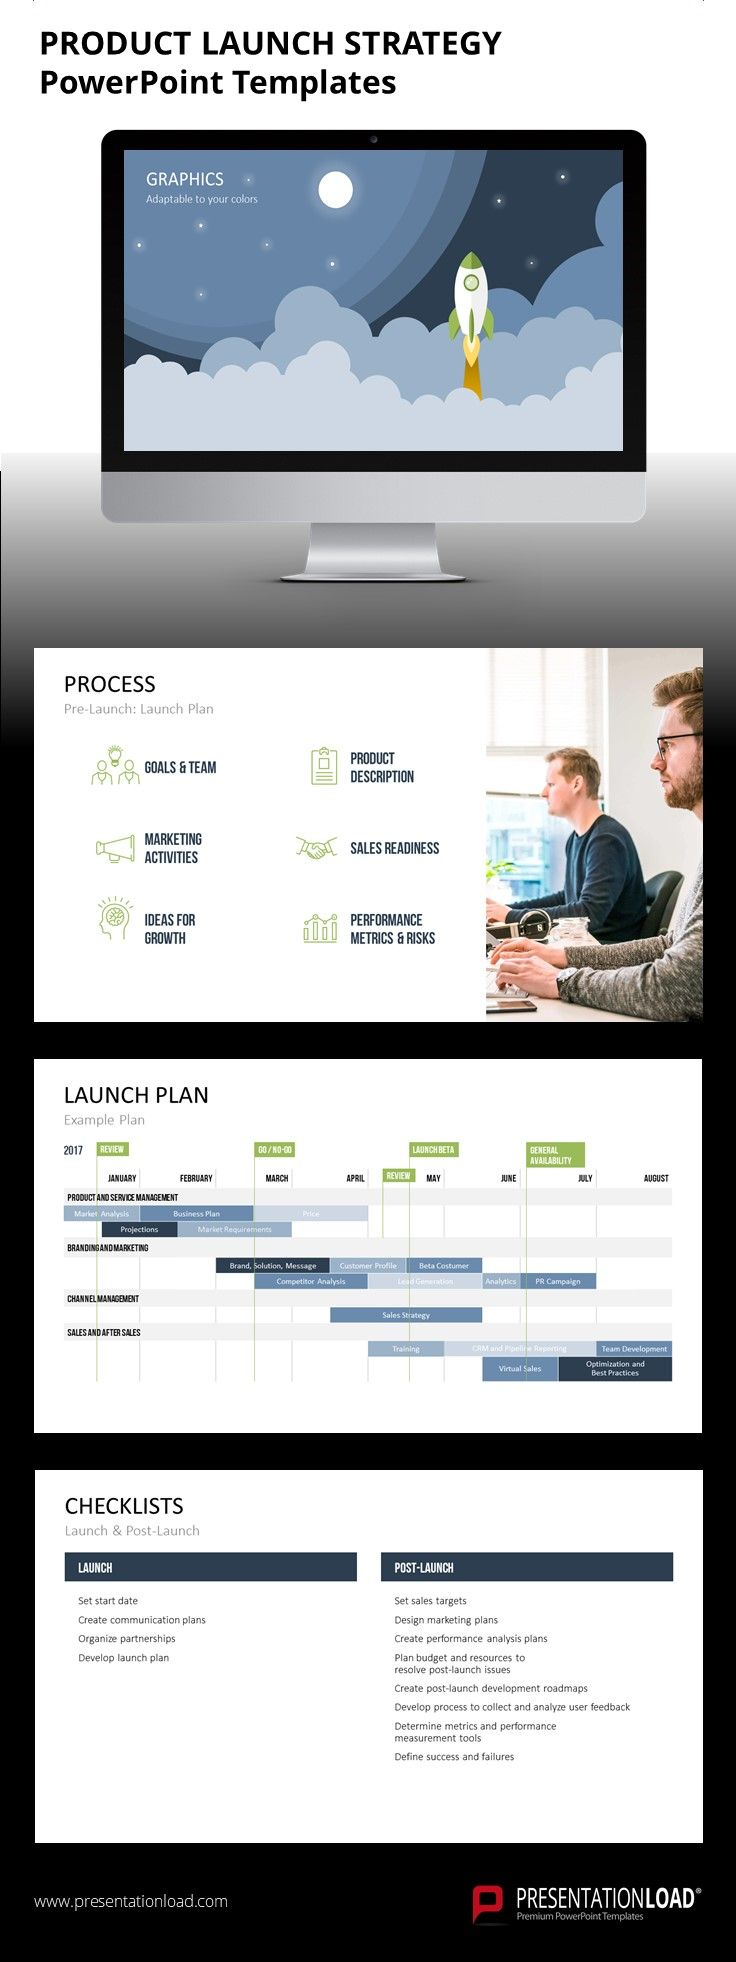 A product launch strategy is the process by which a new